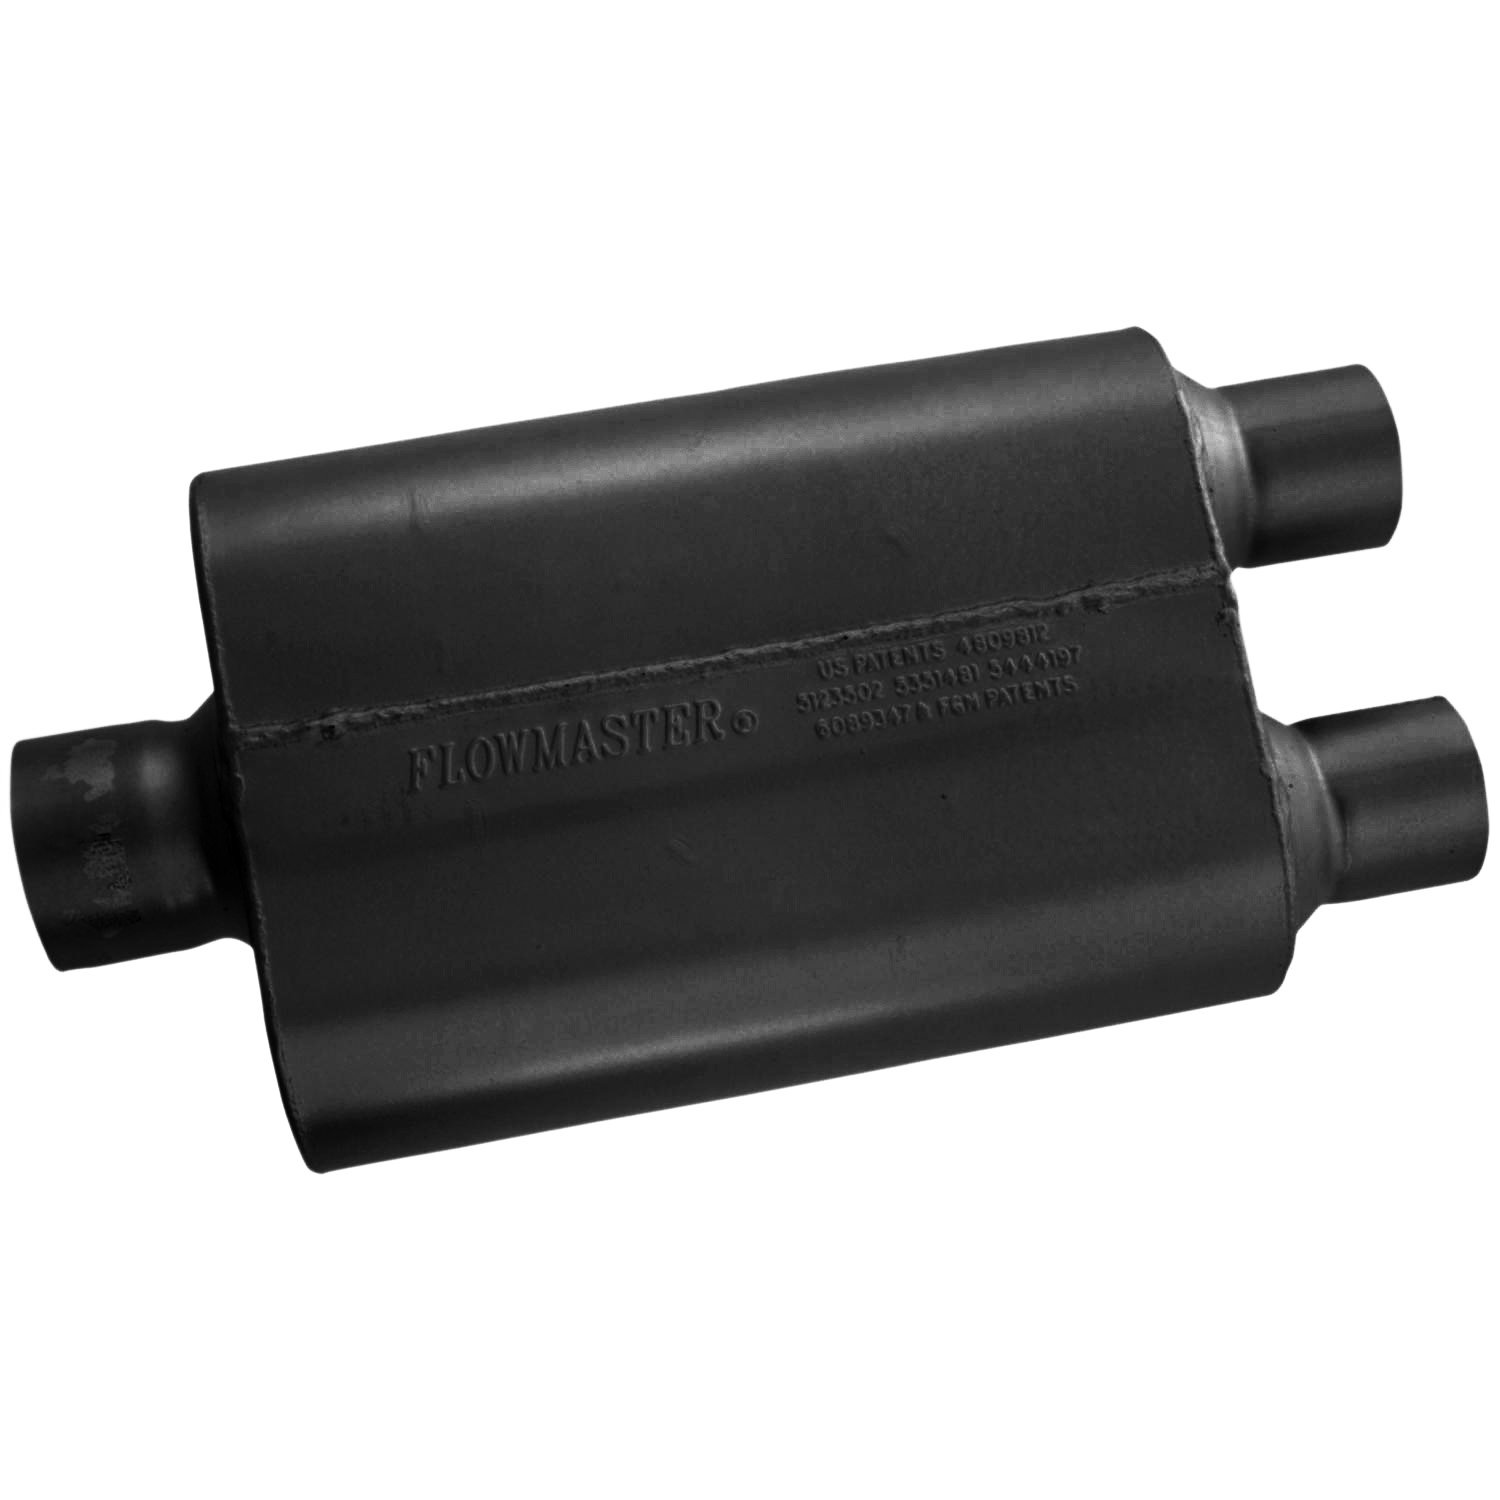 Flowmaster 430402 40 Series Muffler - 3.00 Center IN / 2.50 Dual OUT - Aggressive Sound